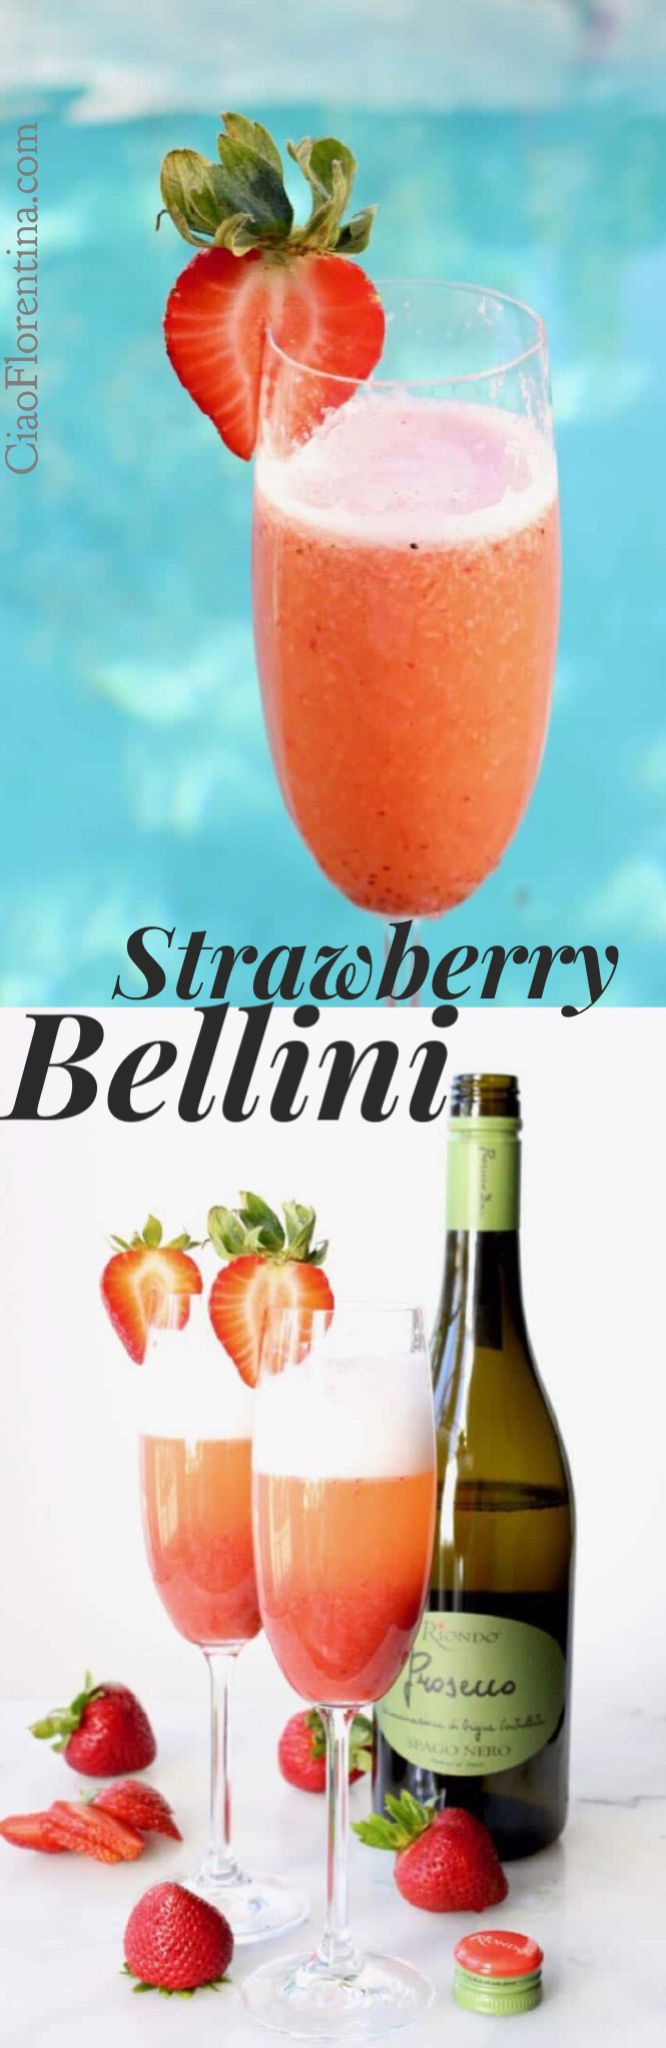 Strawberry Bellini Cocktails with #RiondoProsecco #ItalianForSummer | ad | CiaoFlorentina.com @CiaoFlorentina